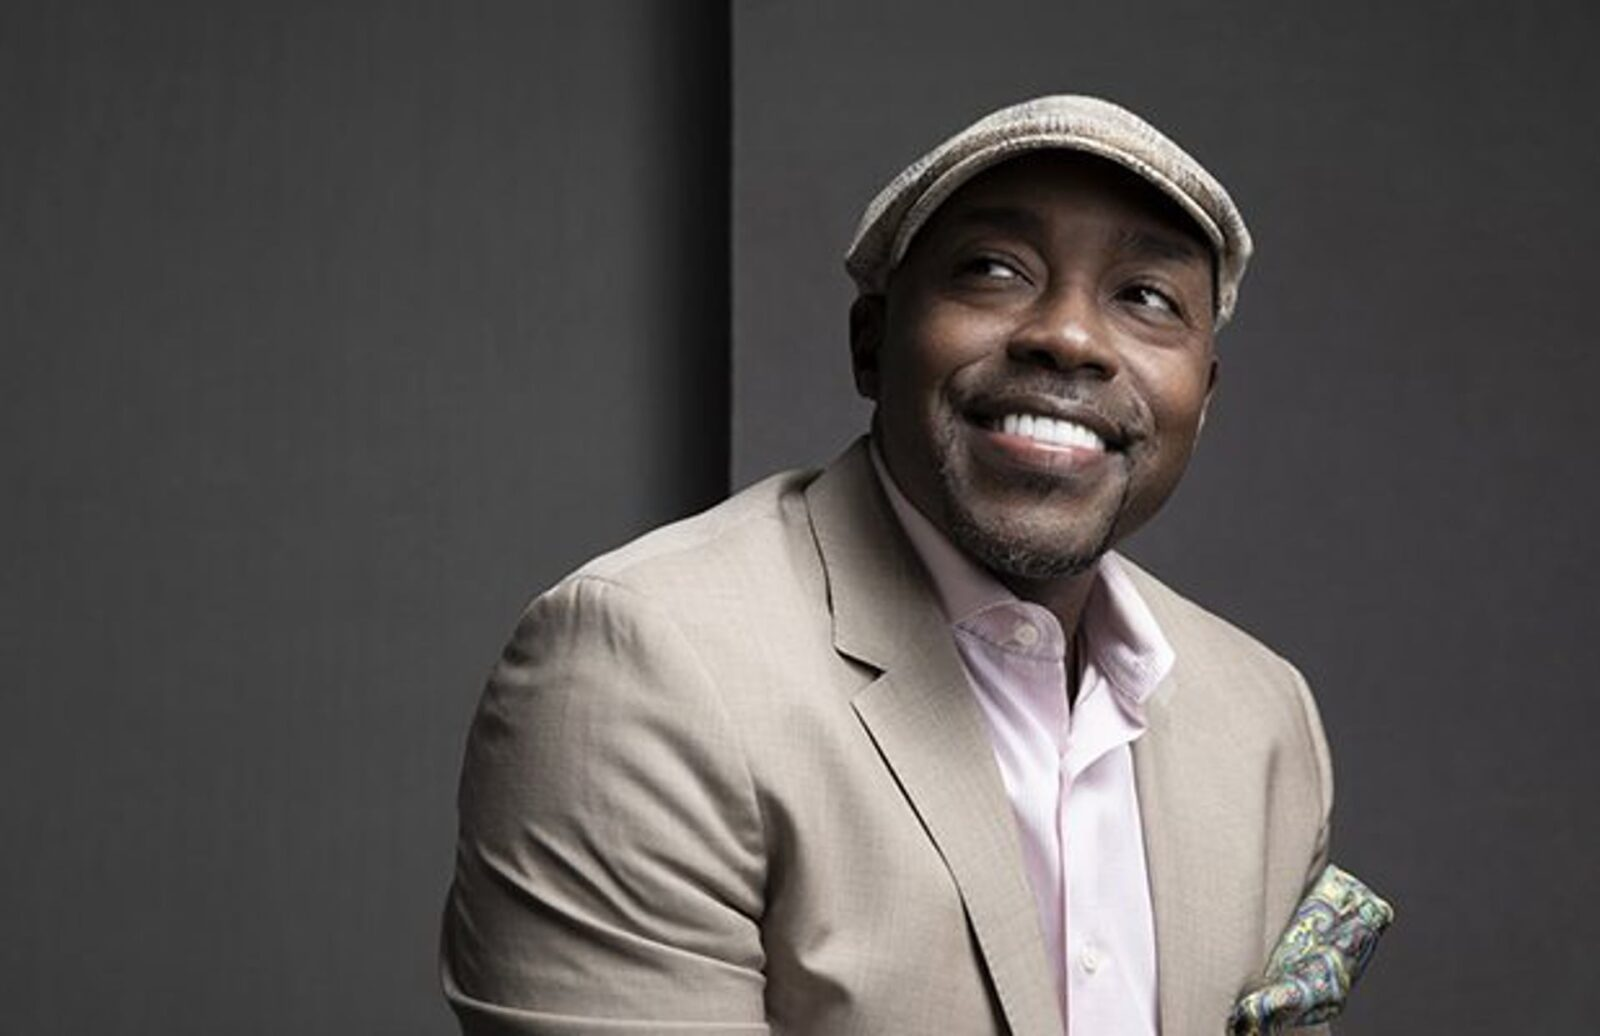 Positioning yourself for success: A conversation with Will Packer